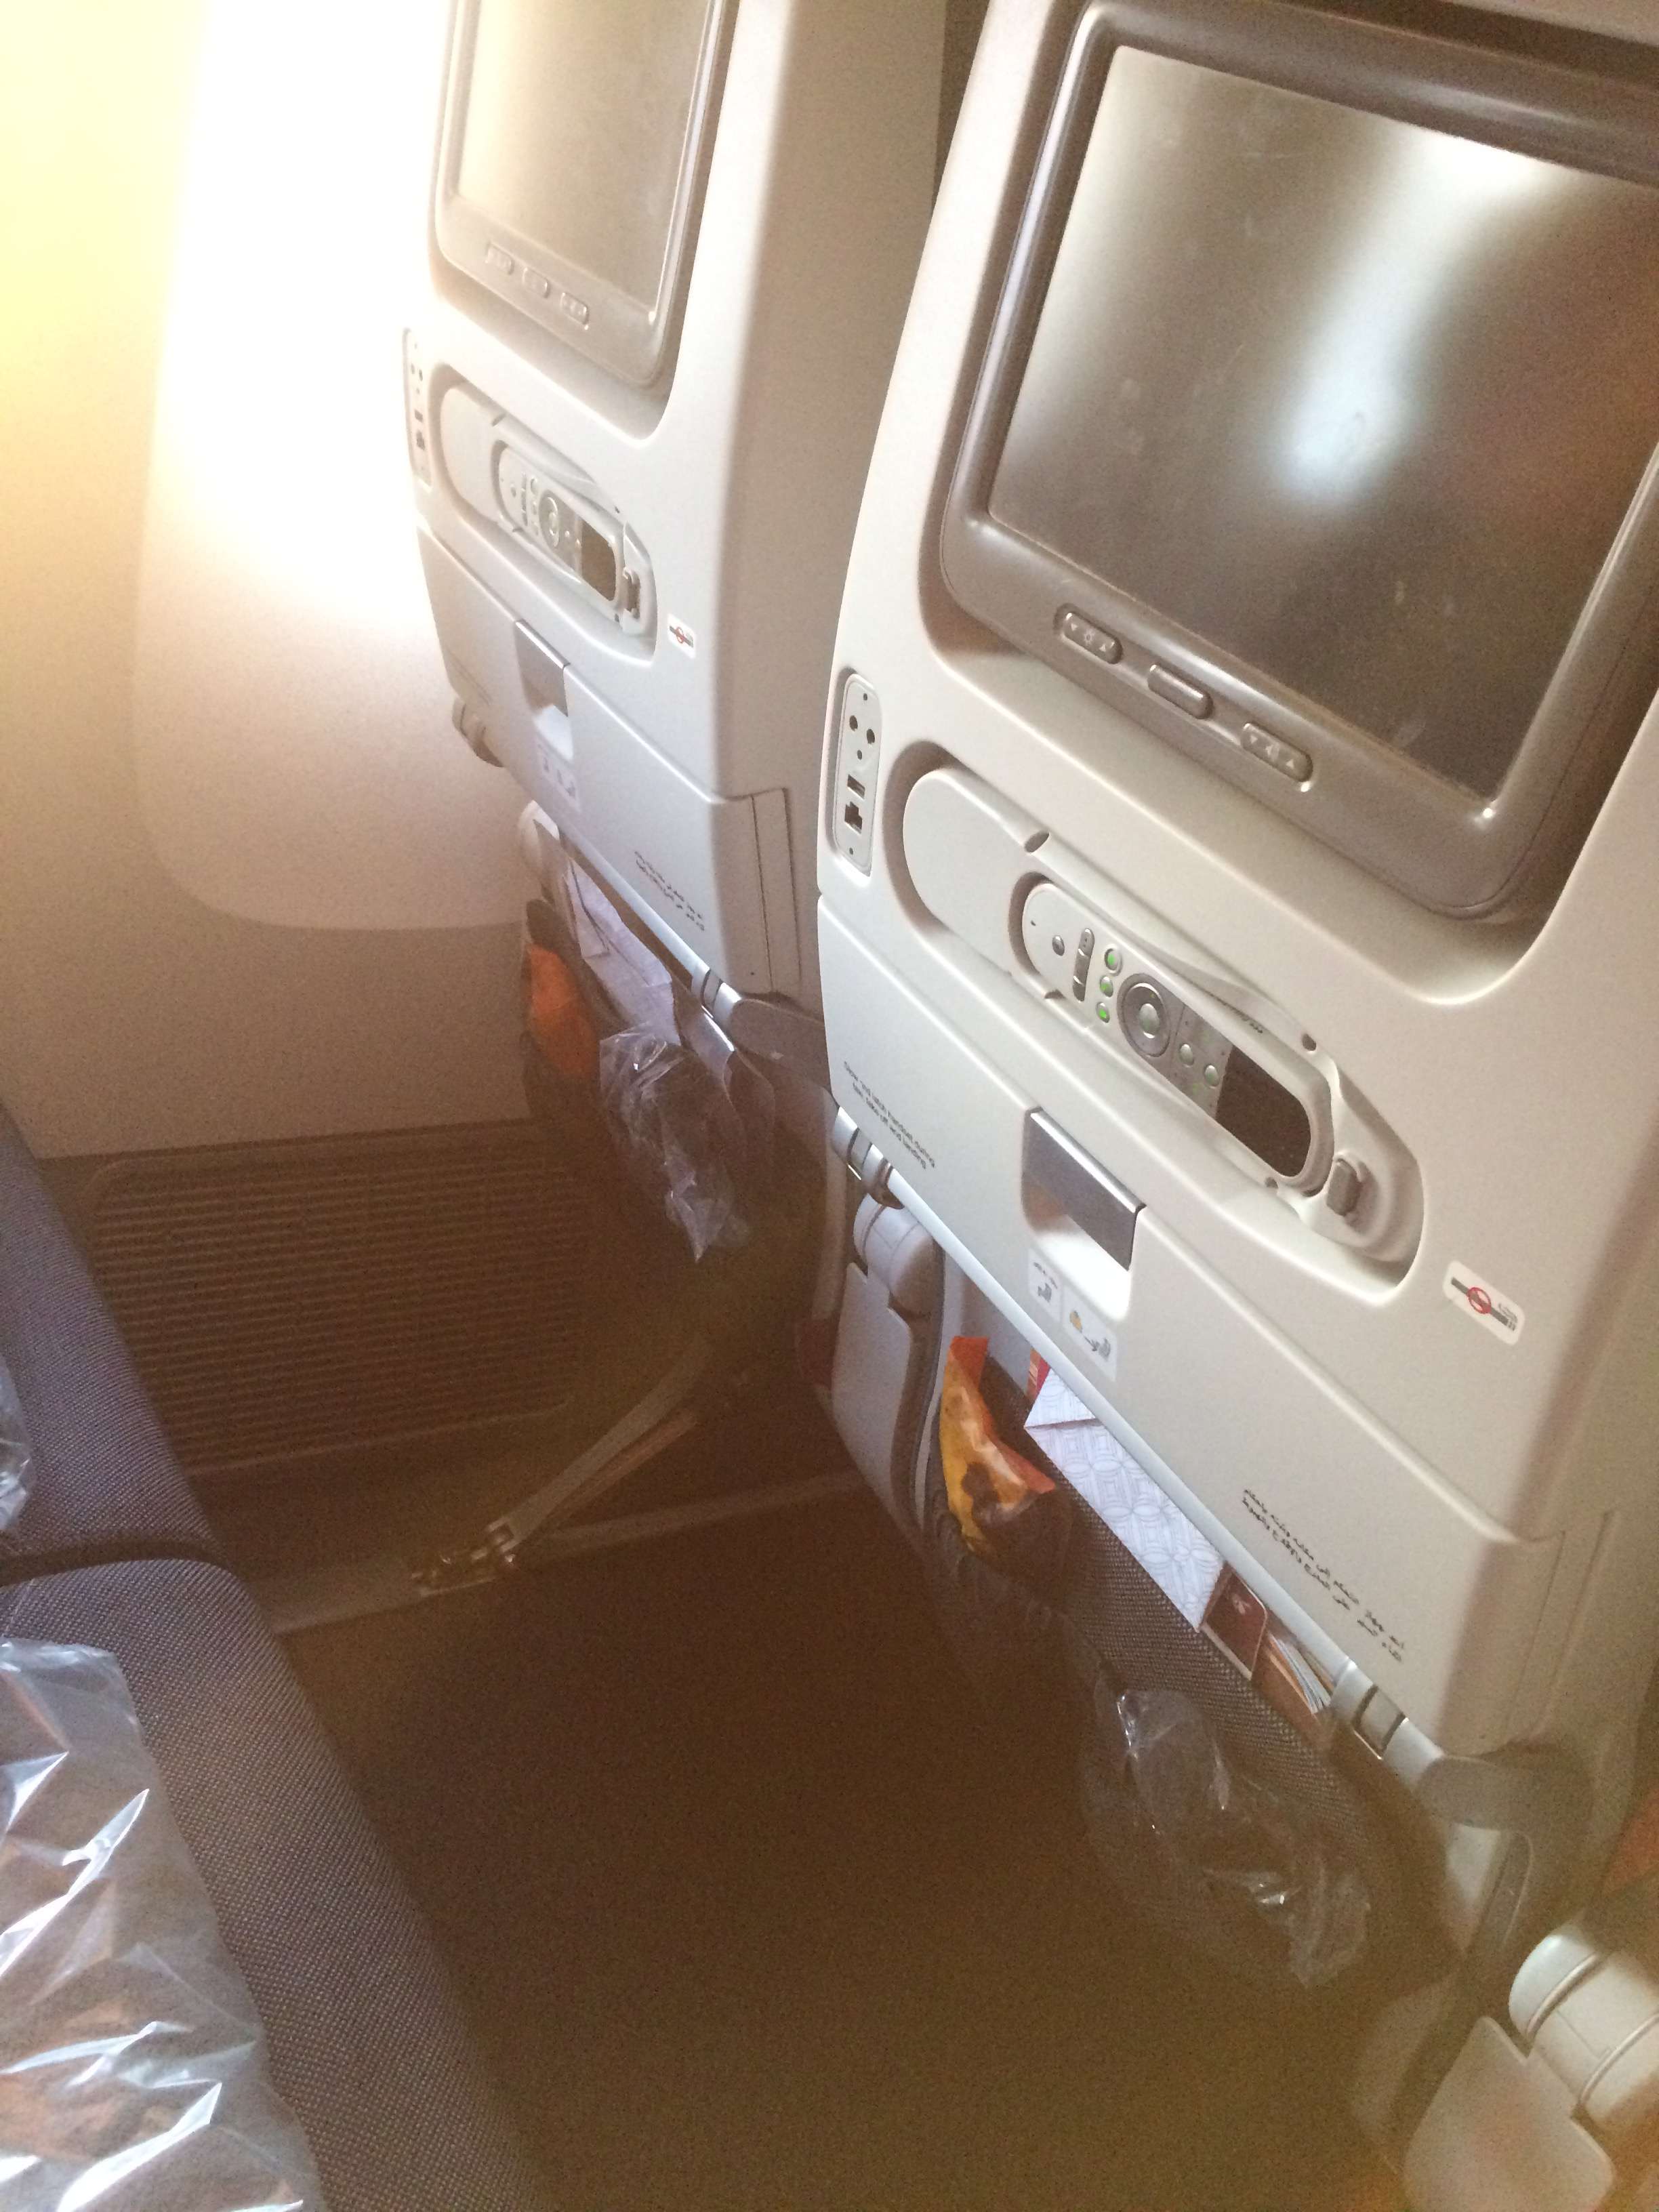 qatar airways legroom.JPG